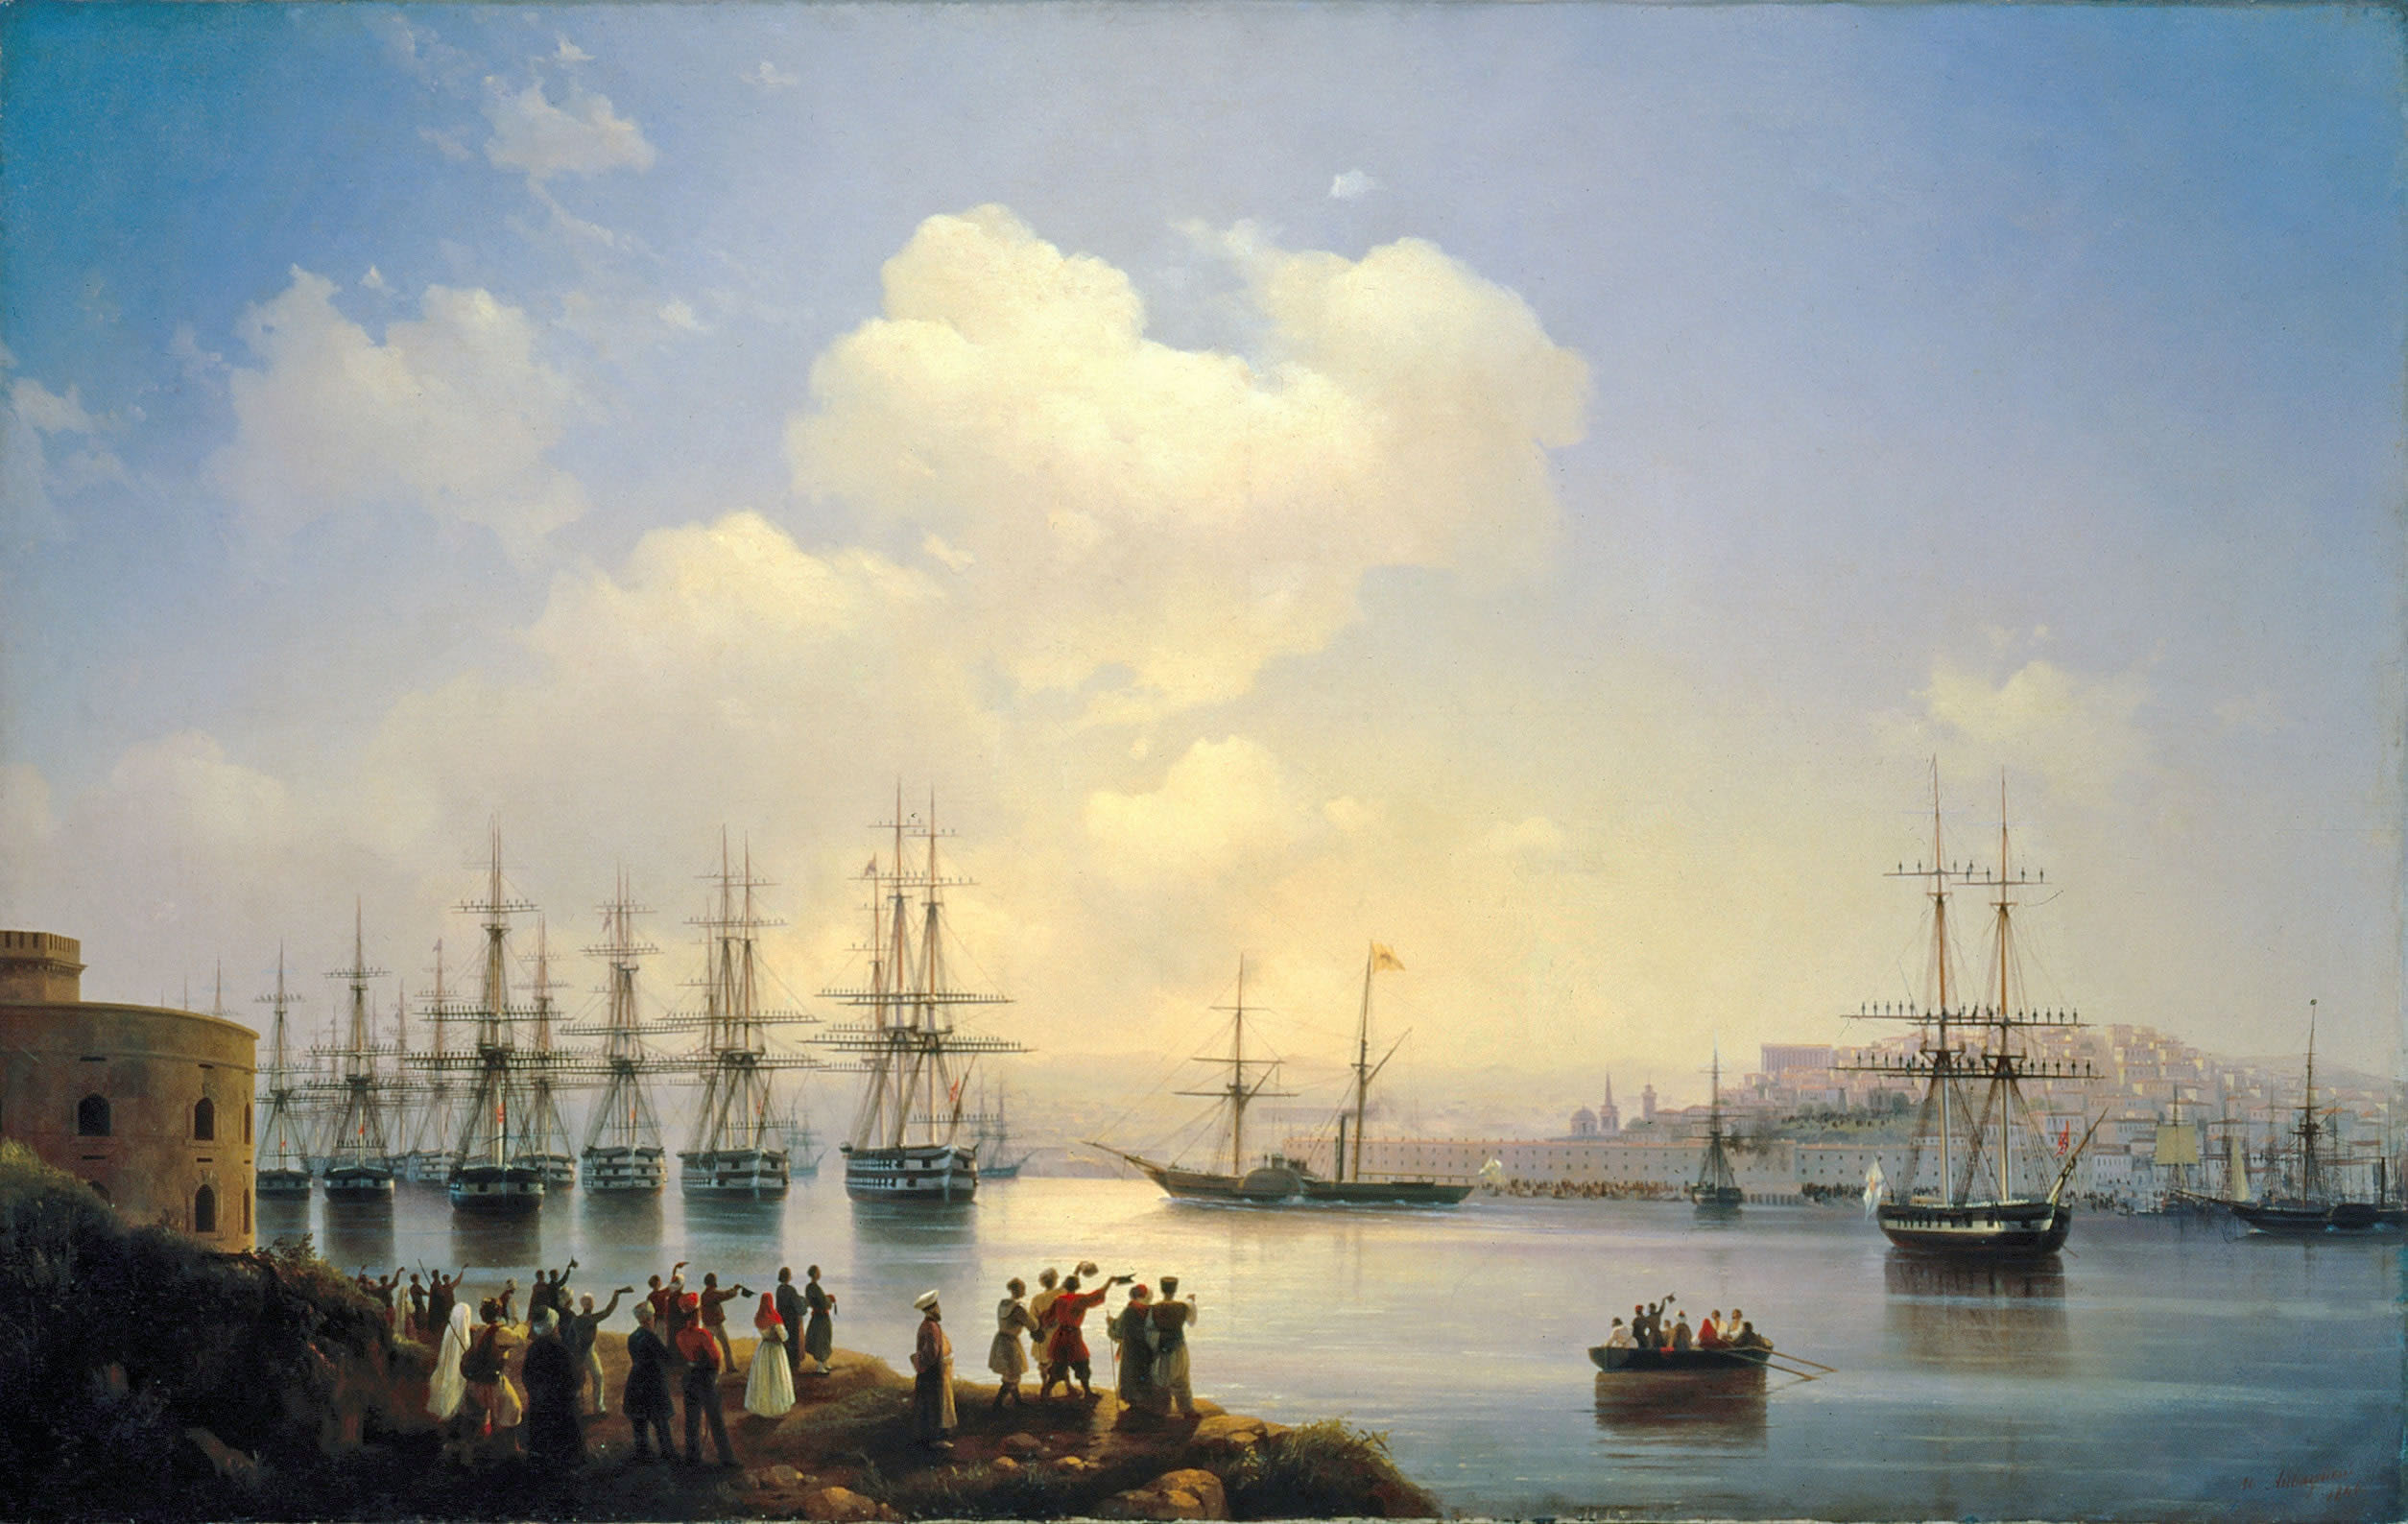 Ivan_Constantinovich_Aivazovsky_-_The_Russian_Squadron_on_the_Sebastopol_Roads